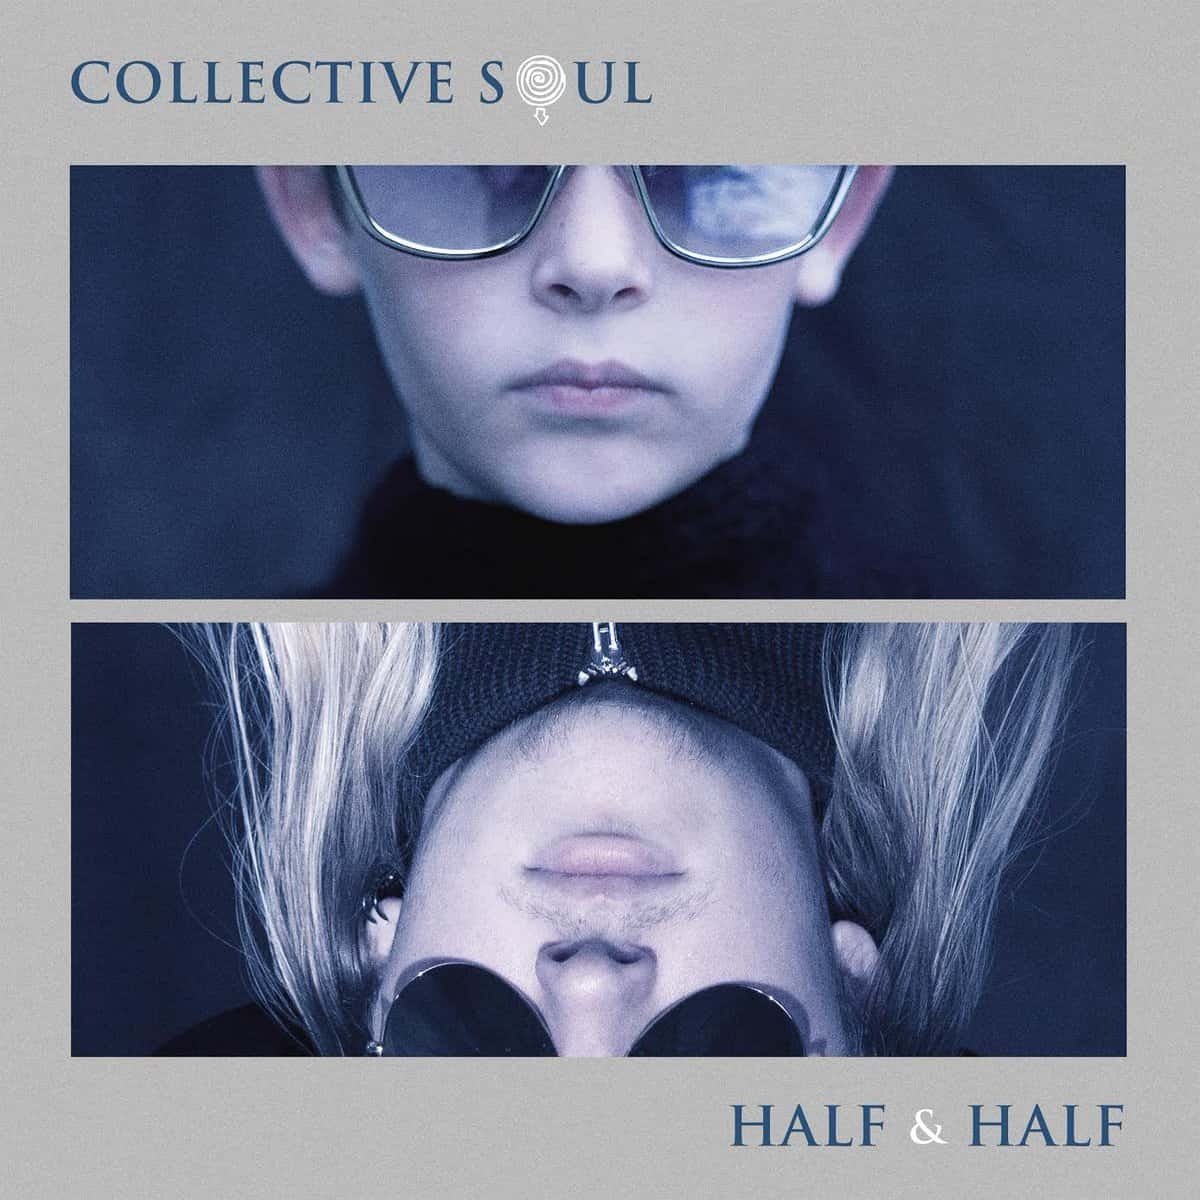 Collective Soul Cover Art Courtesy of ABC